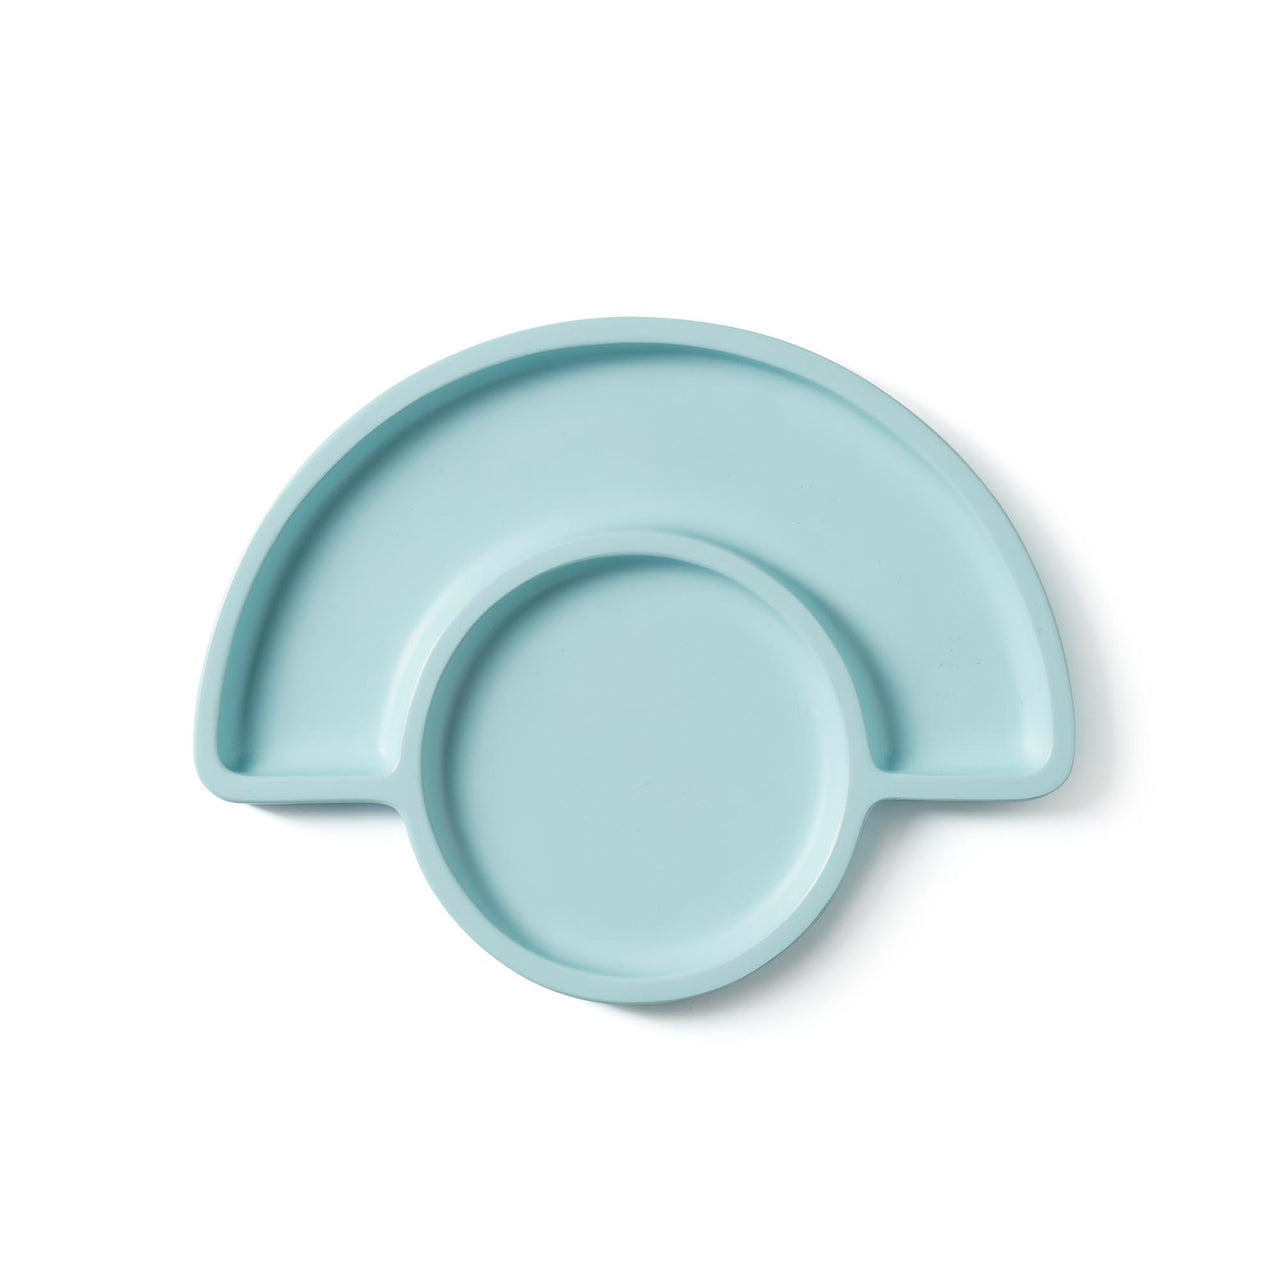 Templo Circle Tray - Light Blue